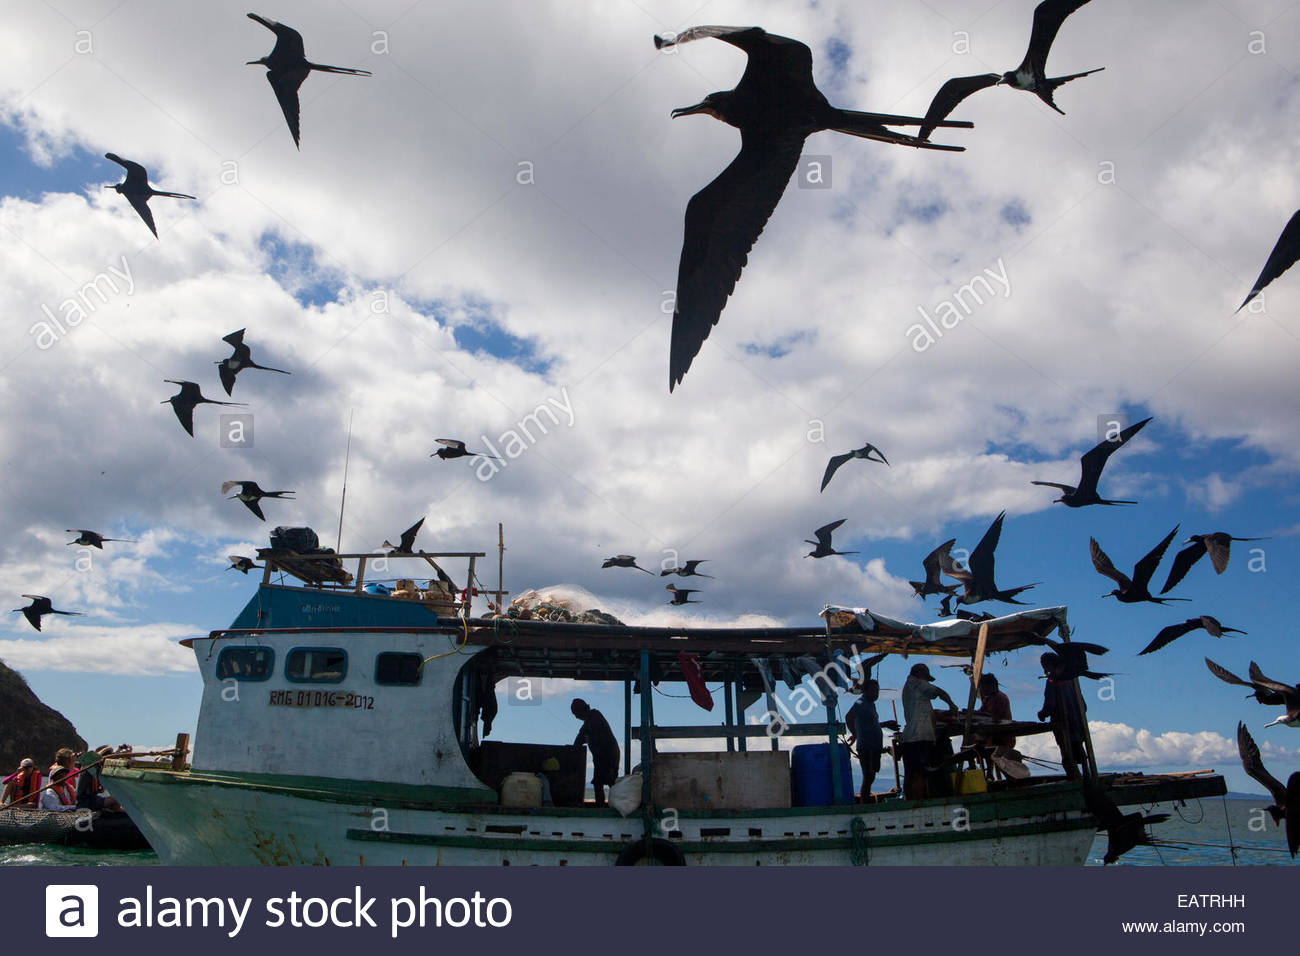 A flock of magnificent frigatebirds soar above a fishing boat. - Stock Image